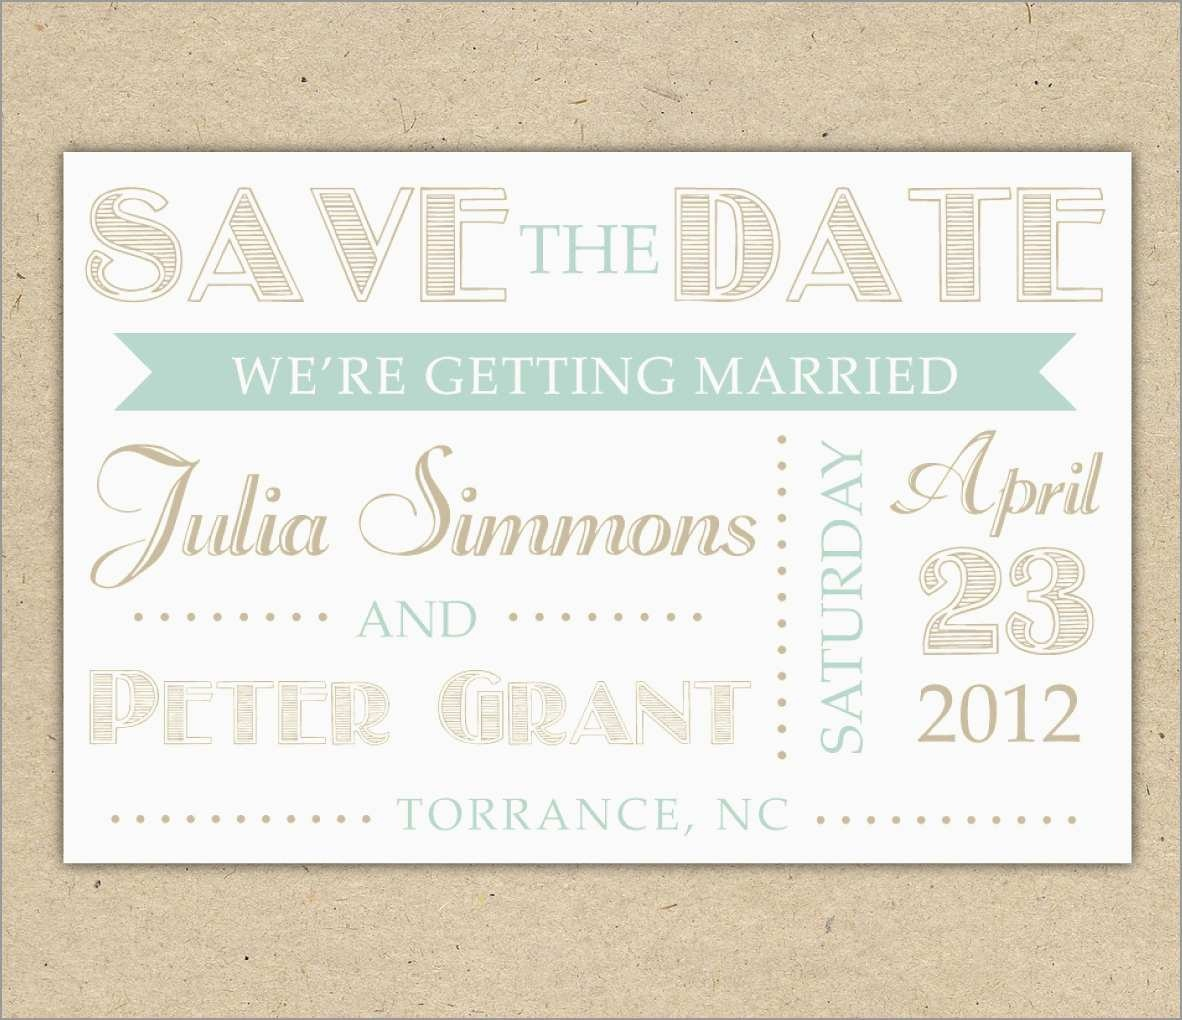 New Free Printable Save The Date Invitation Templates | Best Of Template - Free Printable Save The Date Invitation Templates